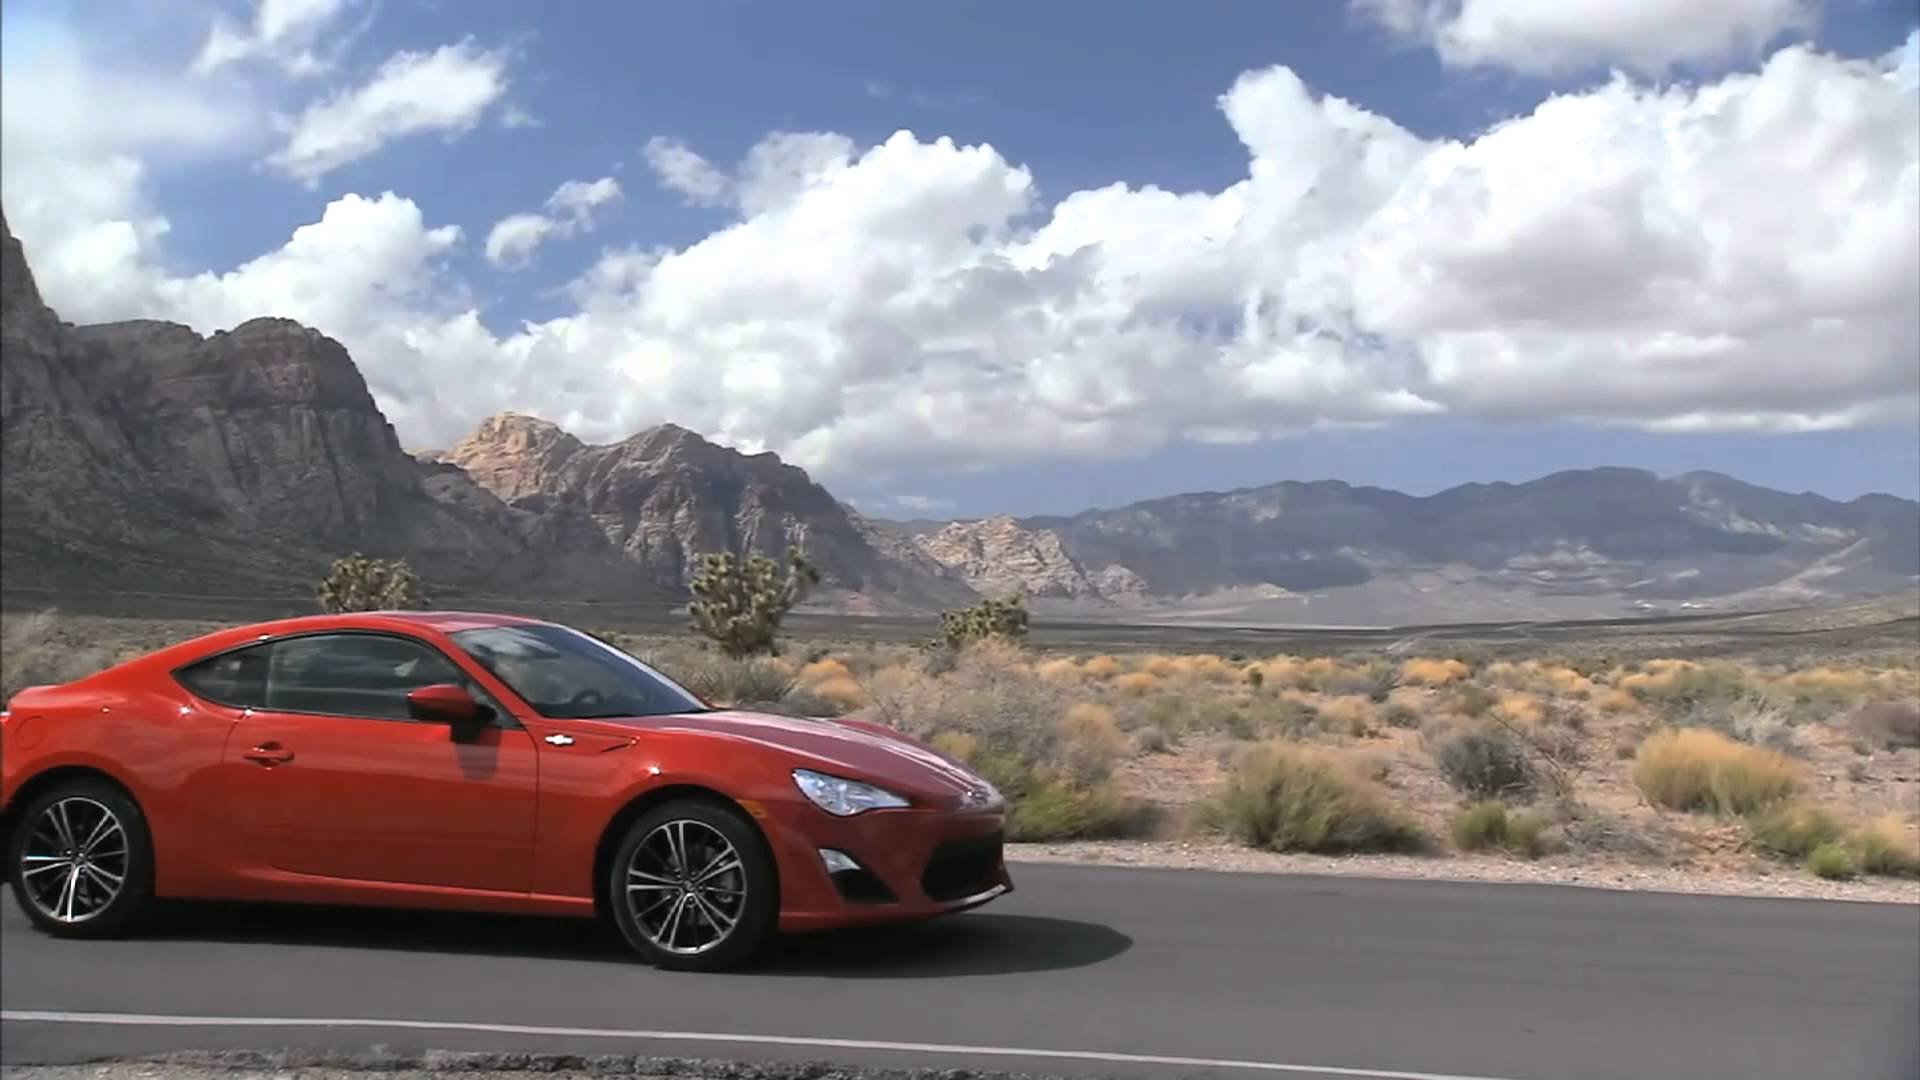 First Test Drive Of The 2013 Scion FRSnbsp